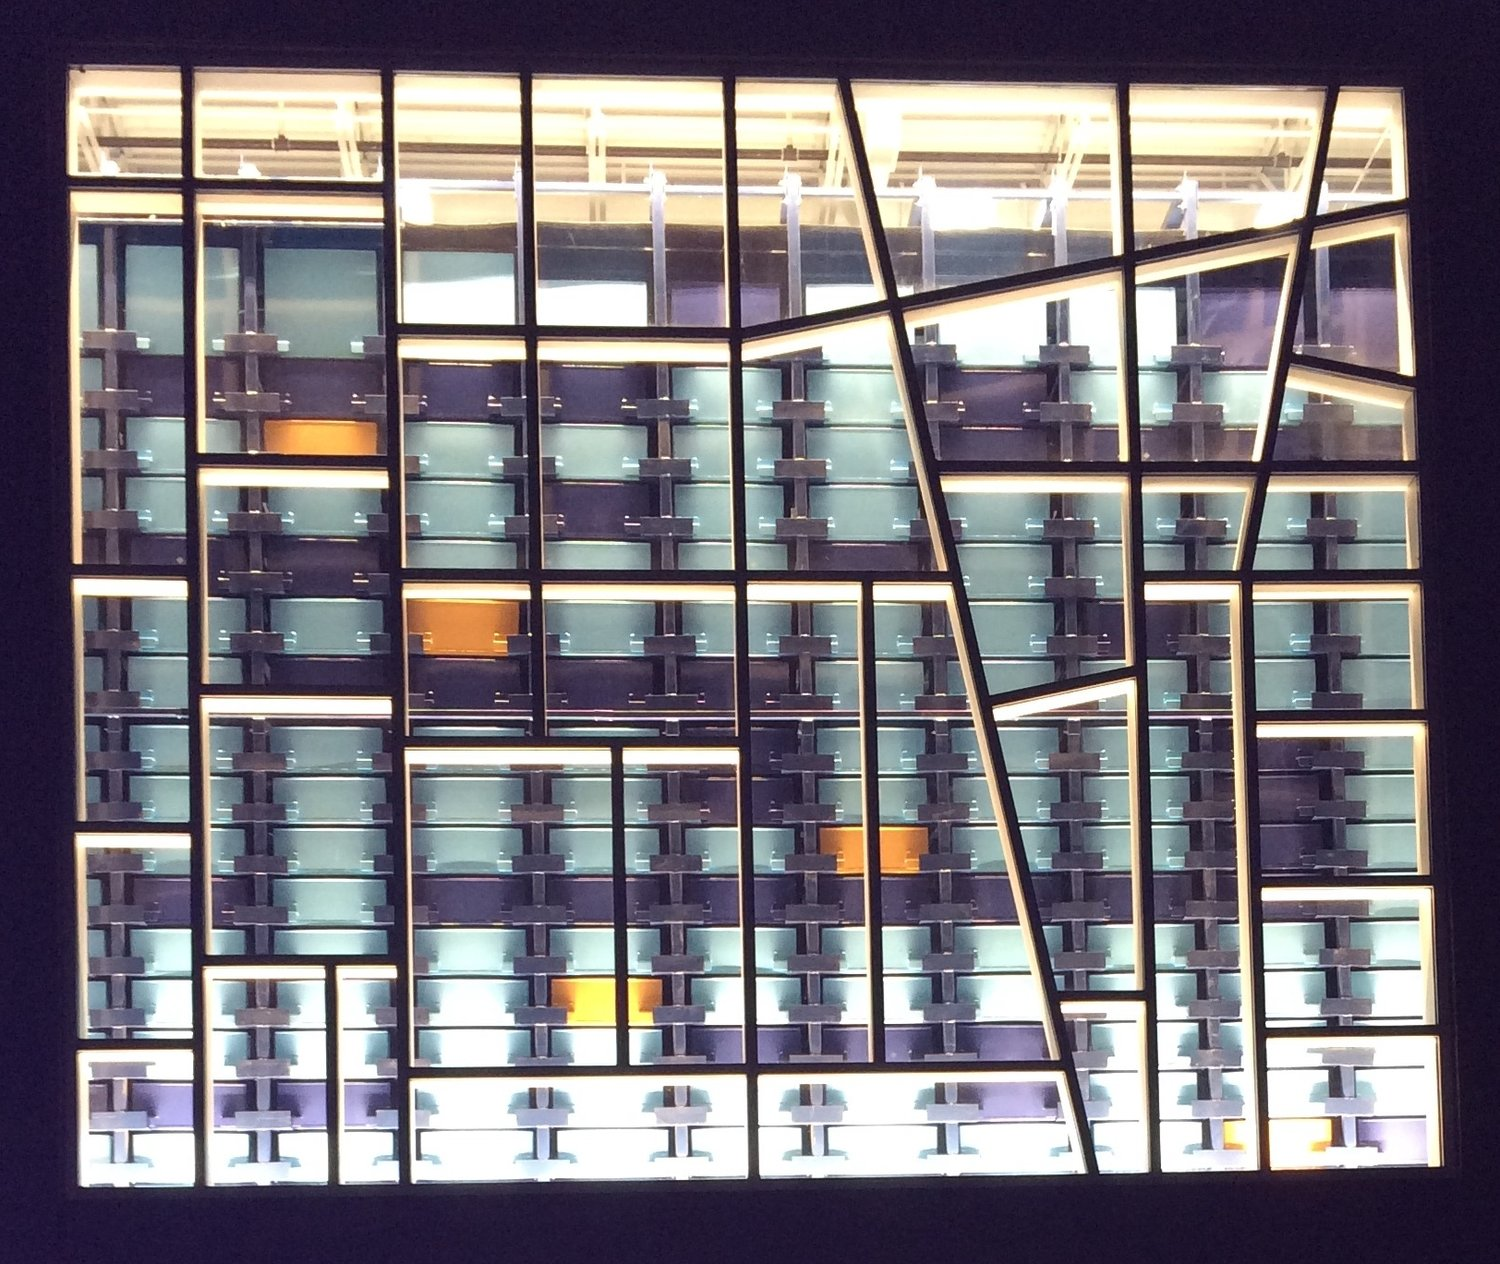 image of outside view of the ASRS, Athena, at night,